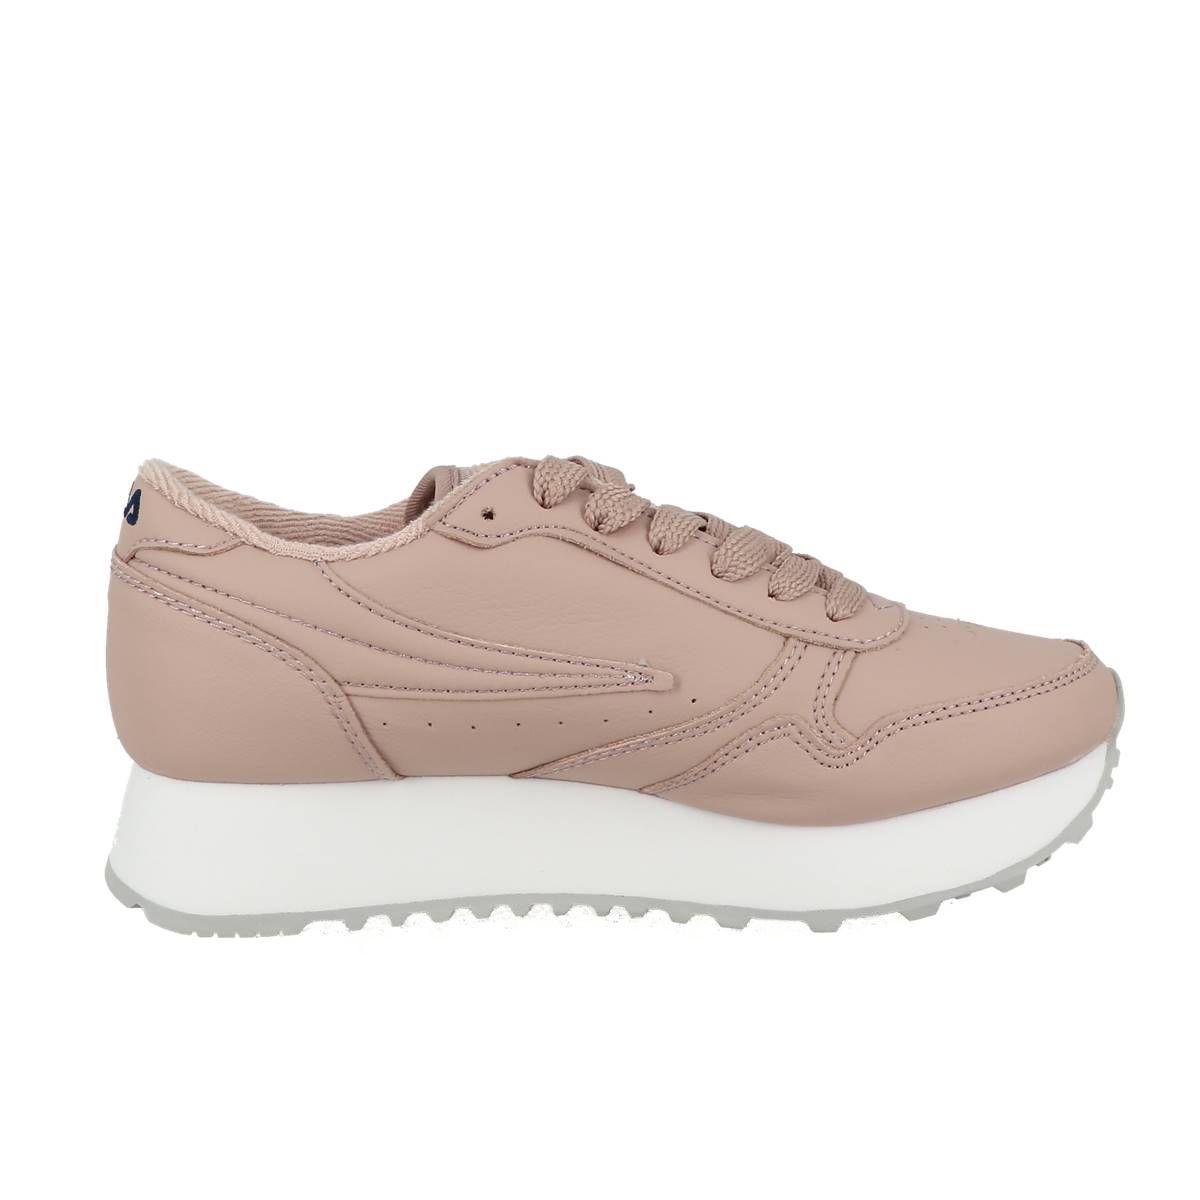 SERENA ORBIT F LOW WMN:RHUBARBE/SYNTHETIQUE/TEXTILE/SYNTHETIQUE/Rhubarbe